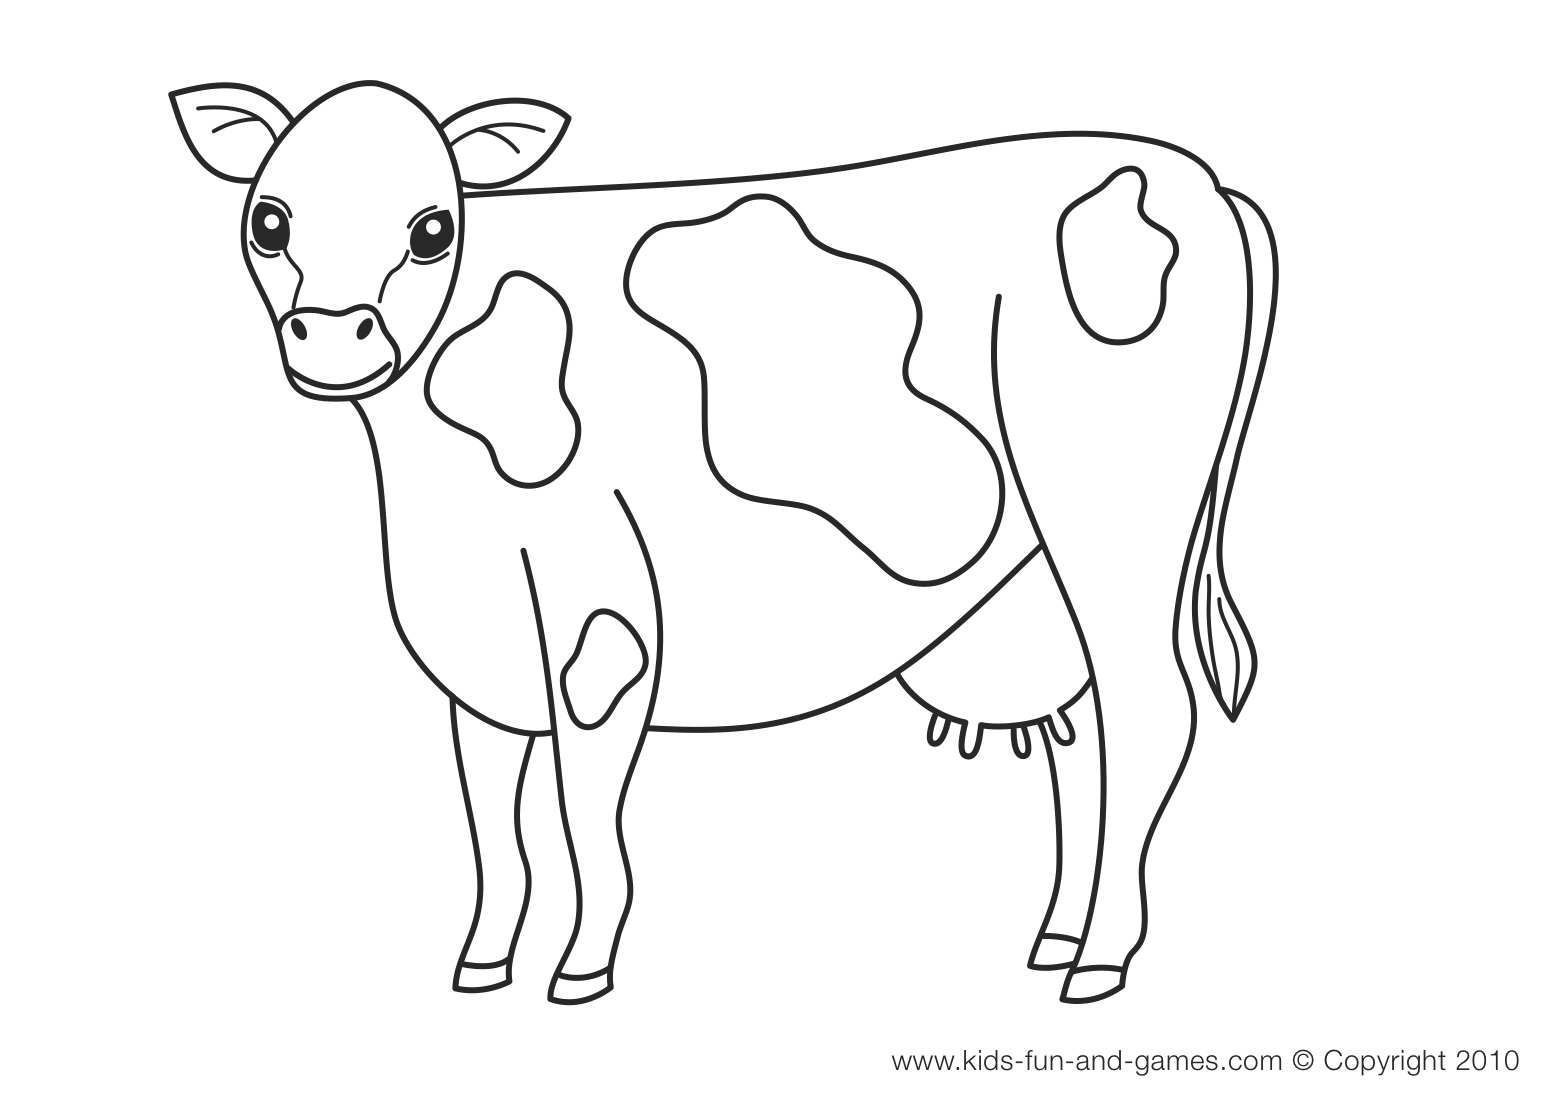 Cute cow coloring pages just